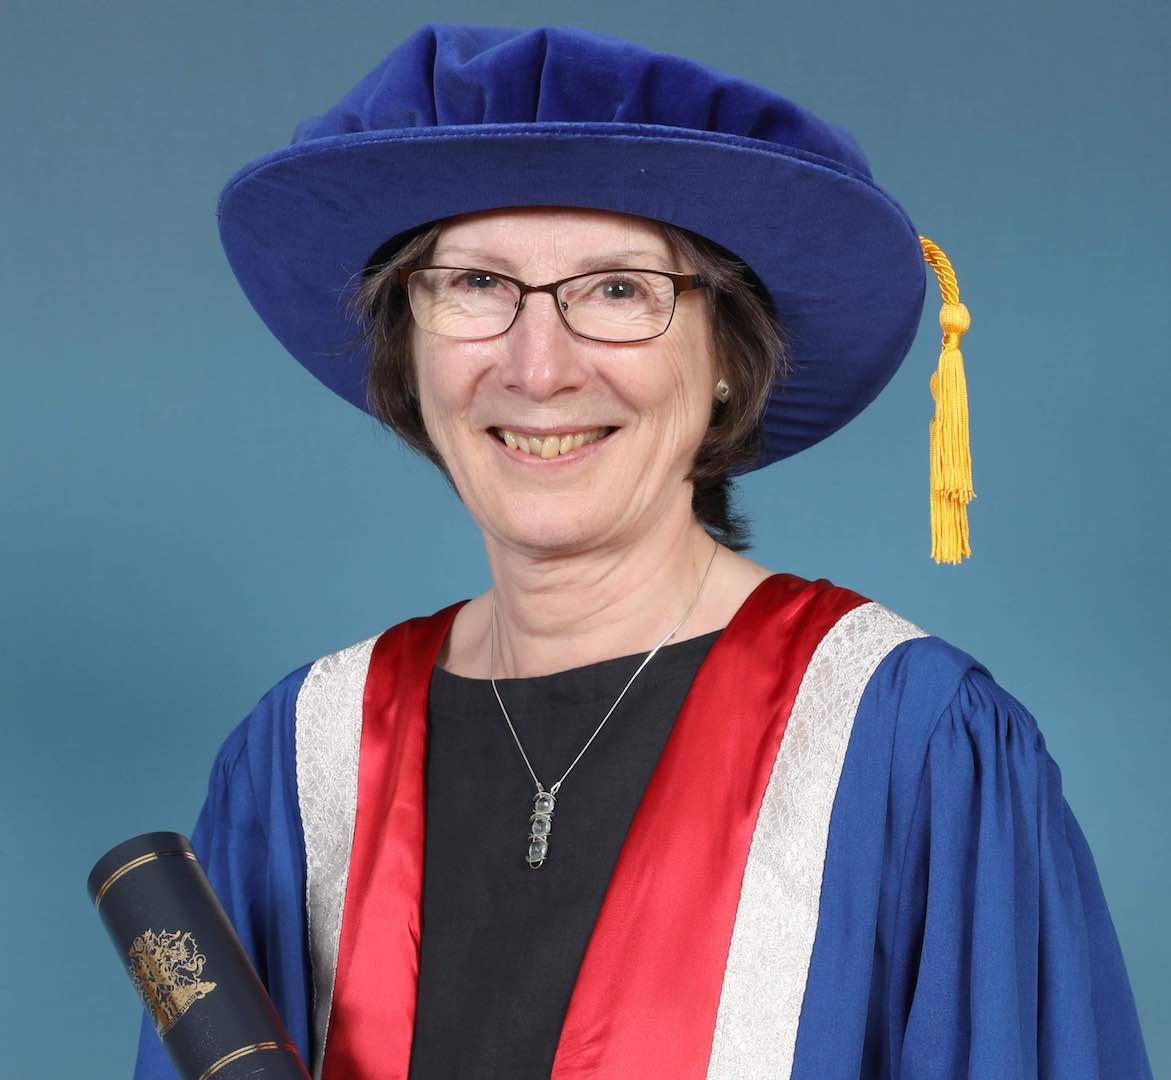 Rosemary Wyse Awarded Honorary Doctor of Science from Queen Mary, U. of London